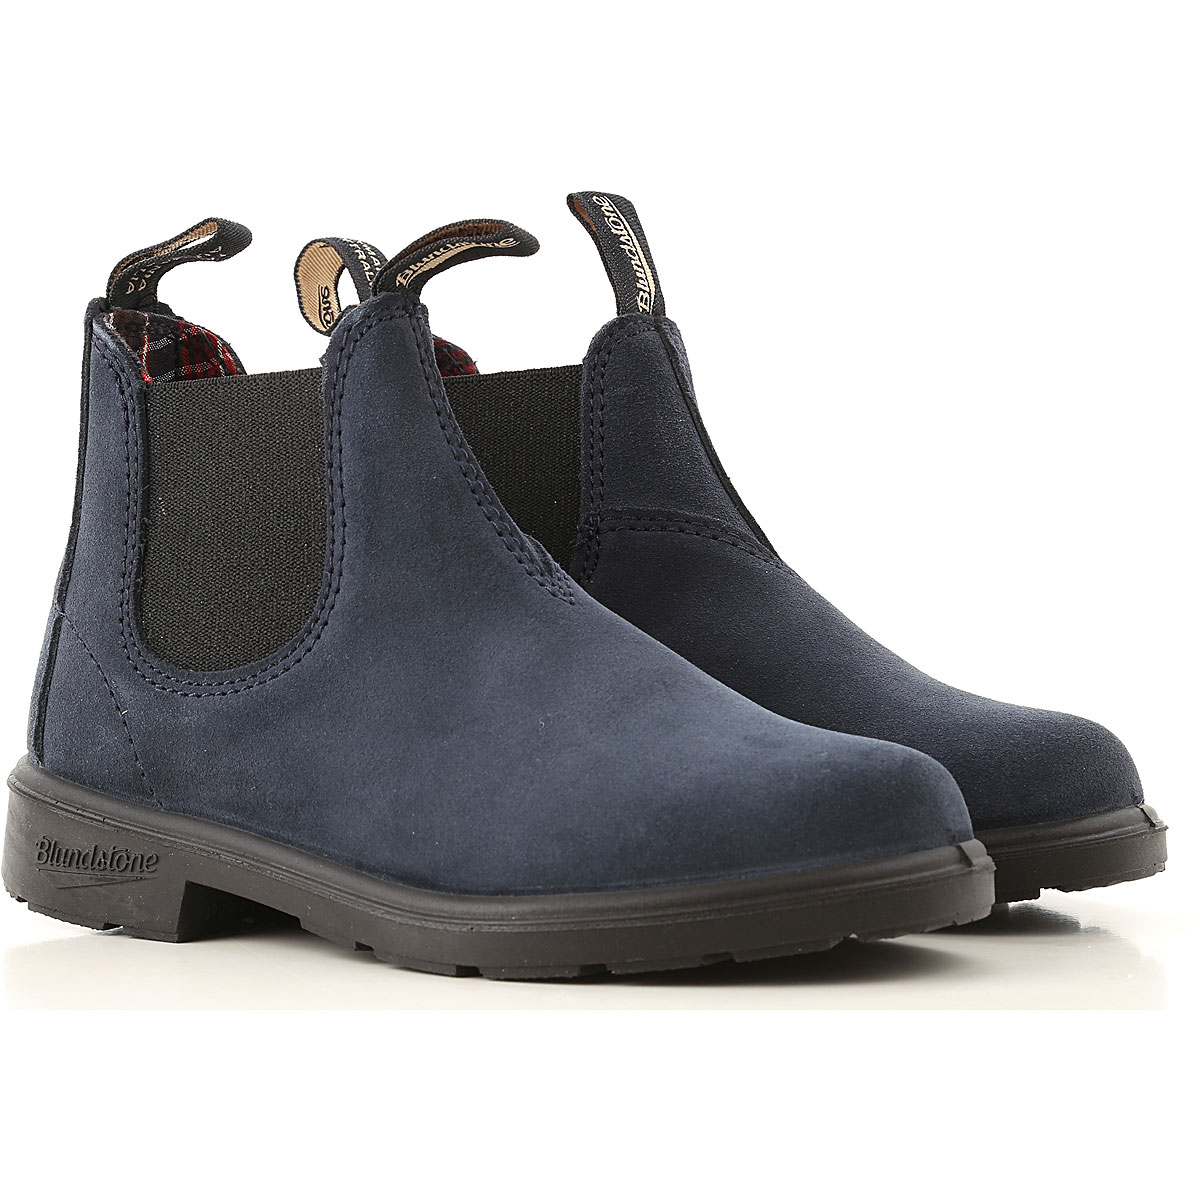 Blundstone Kidswear, Indigo, Suede leather, 2019, UK 9 - US 9.5 - EU 26.5 UK 12 - US 12.5 - EU 30.5